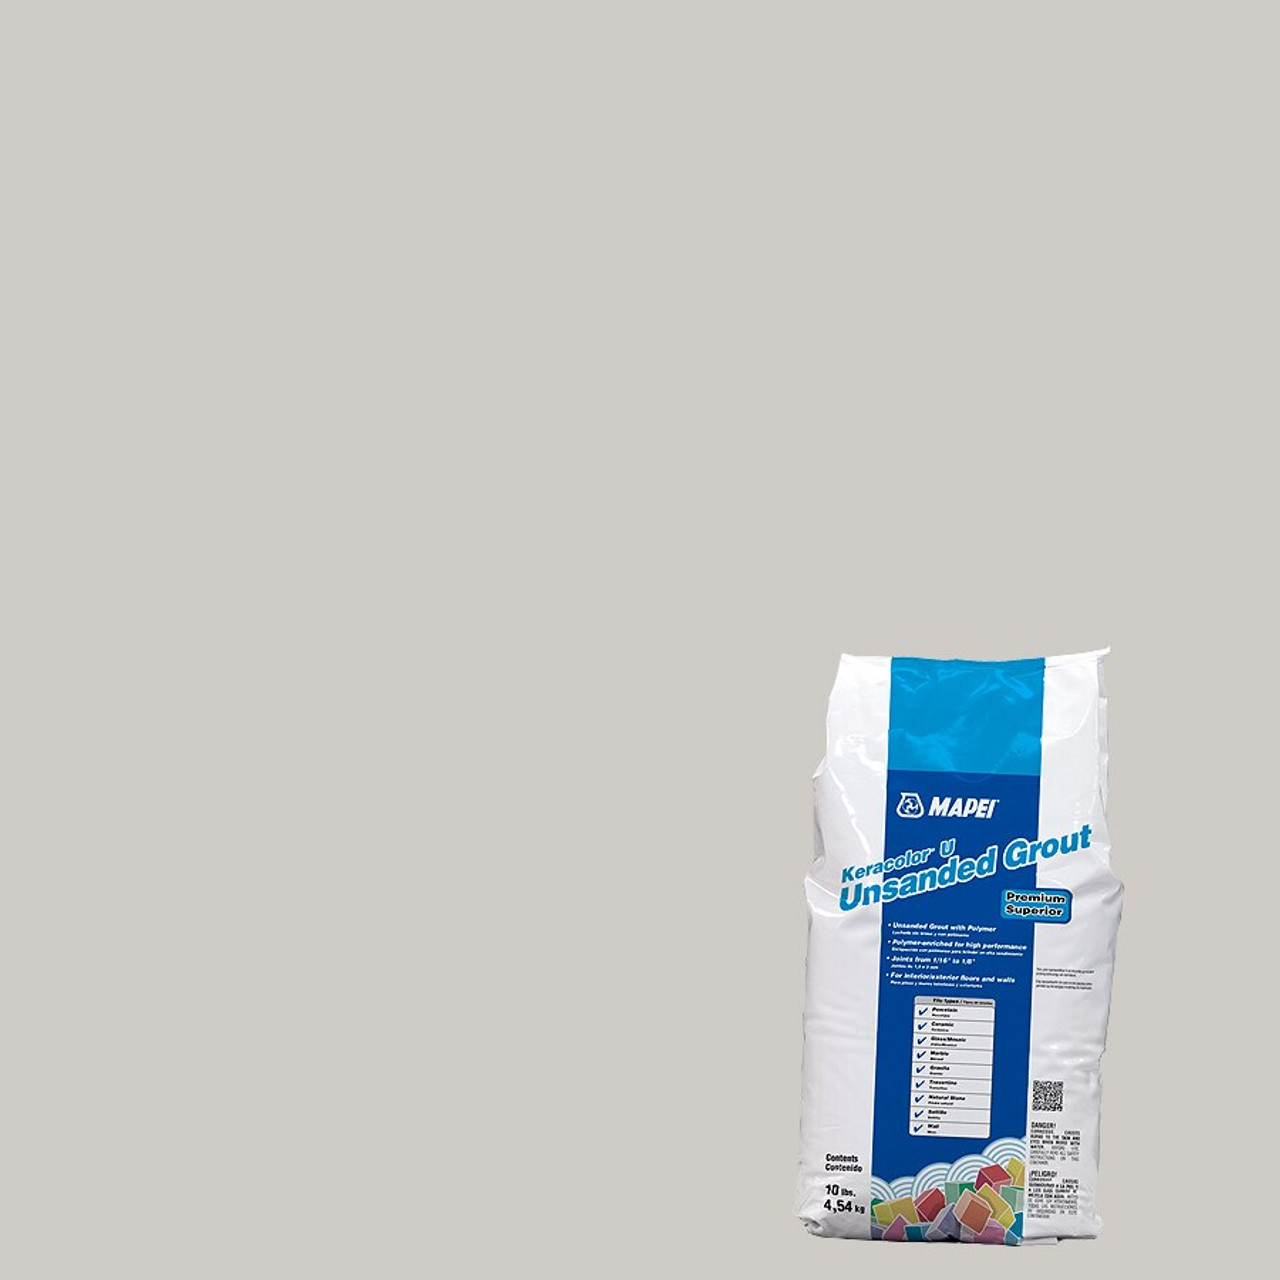 Mapei Mapei Keracolor Unsanded Grout 10 lb Bag - Frost